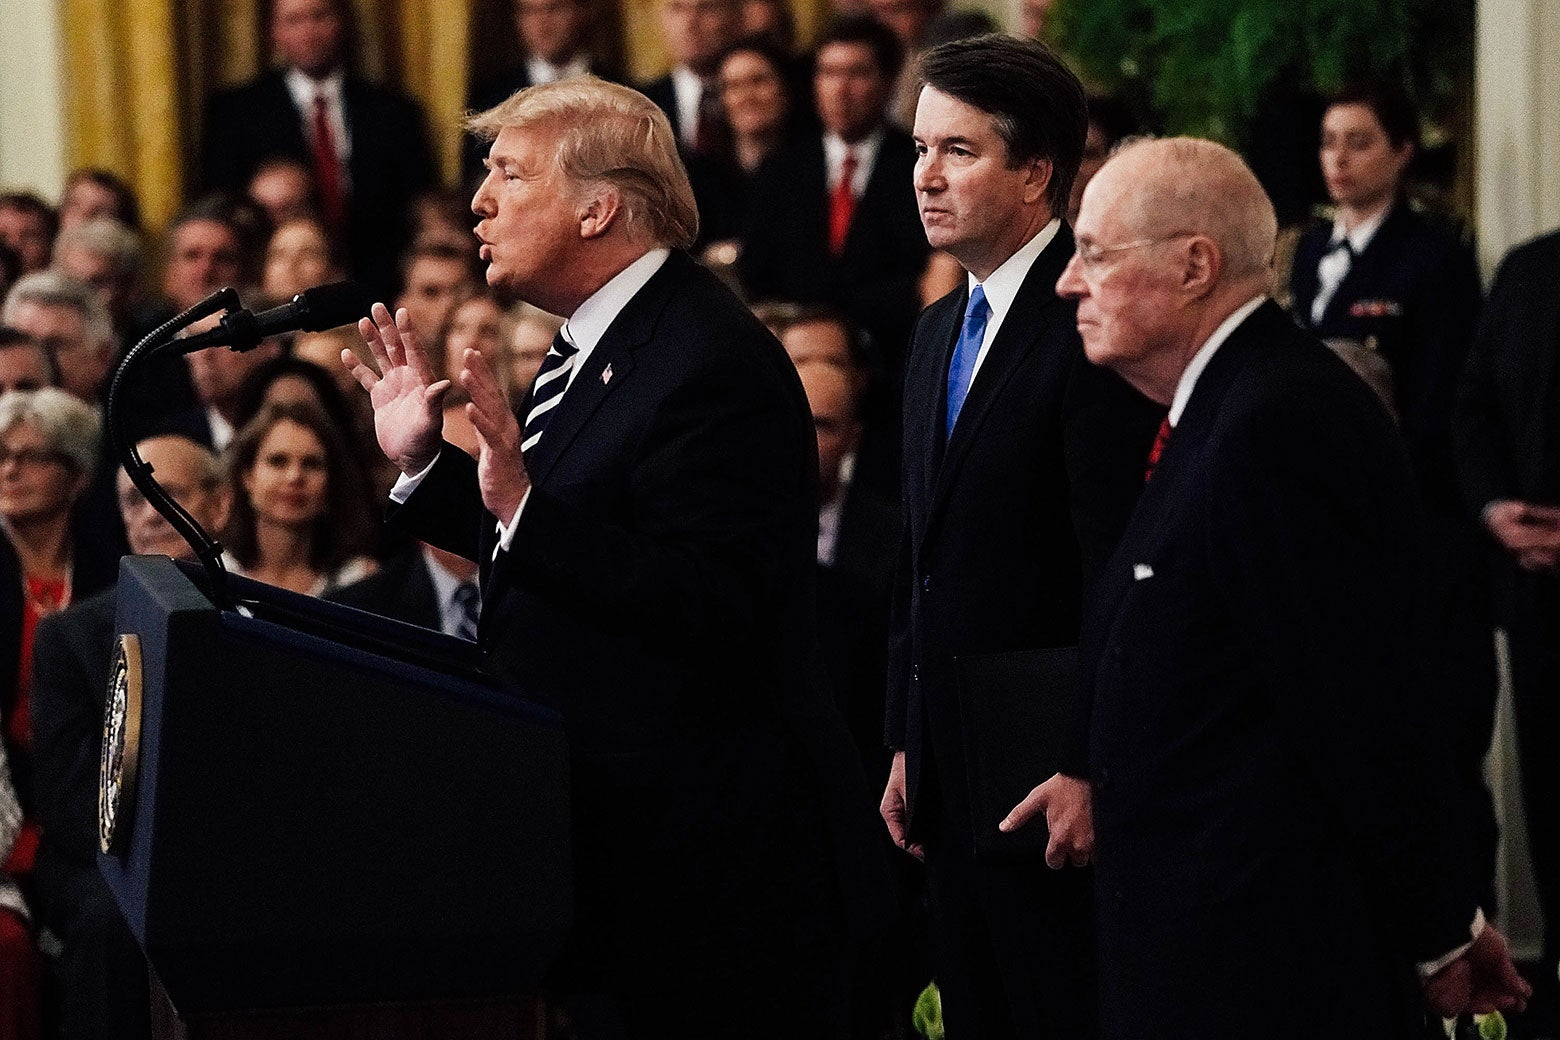 President Donald Trump speaks as Supreme Court Justice Brett Kavanaugh and retired Justice Anthony Kennedy look on during Kavanaugh's ceremonial swearing-in at the East Room of the White House on Monday.